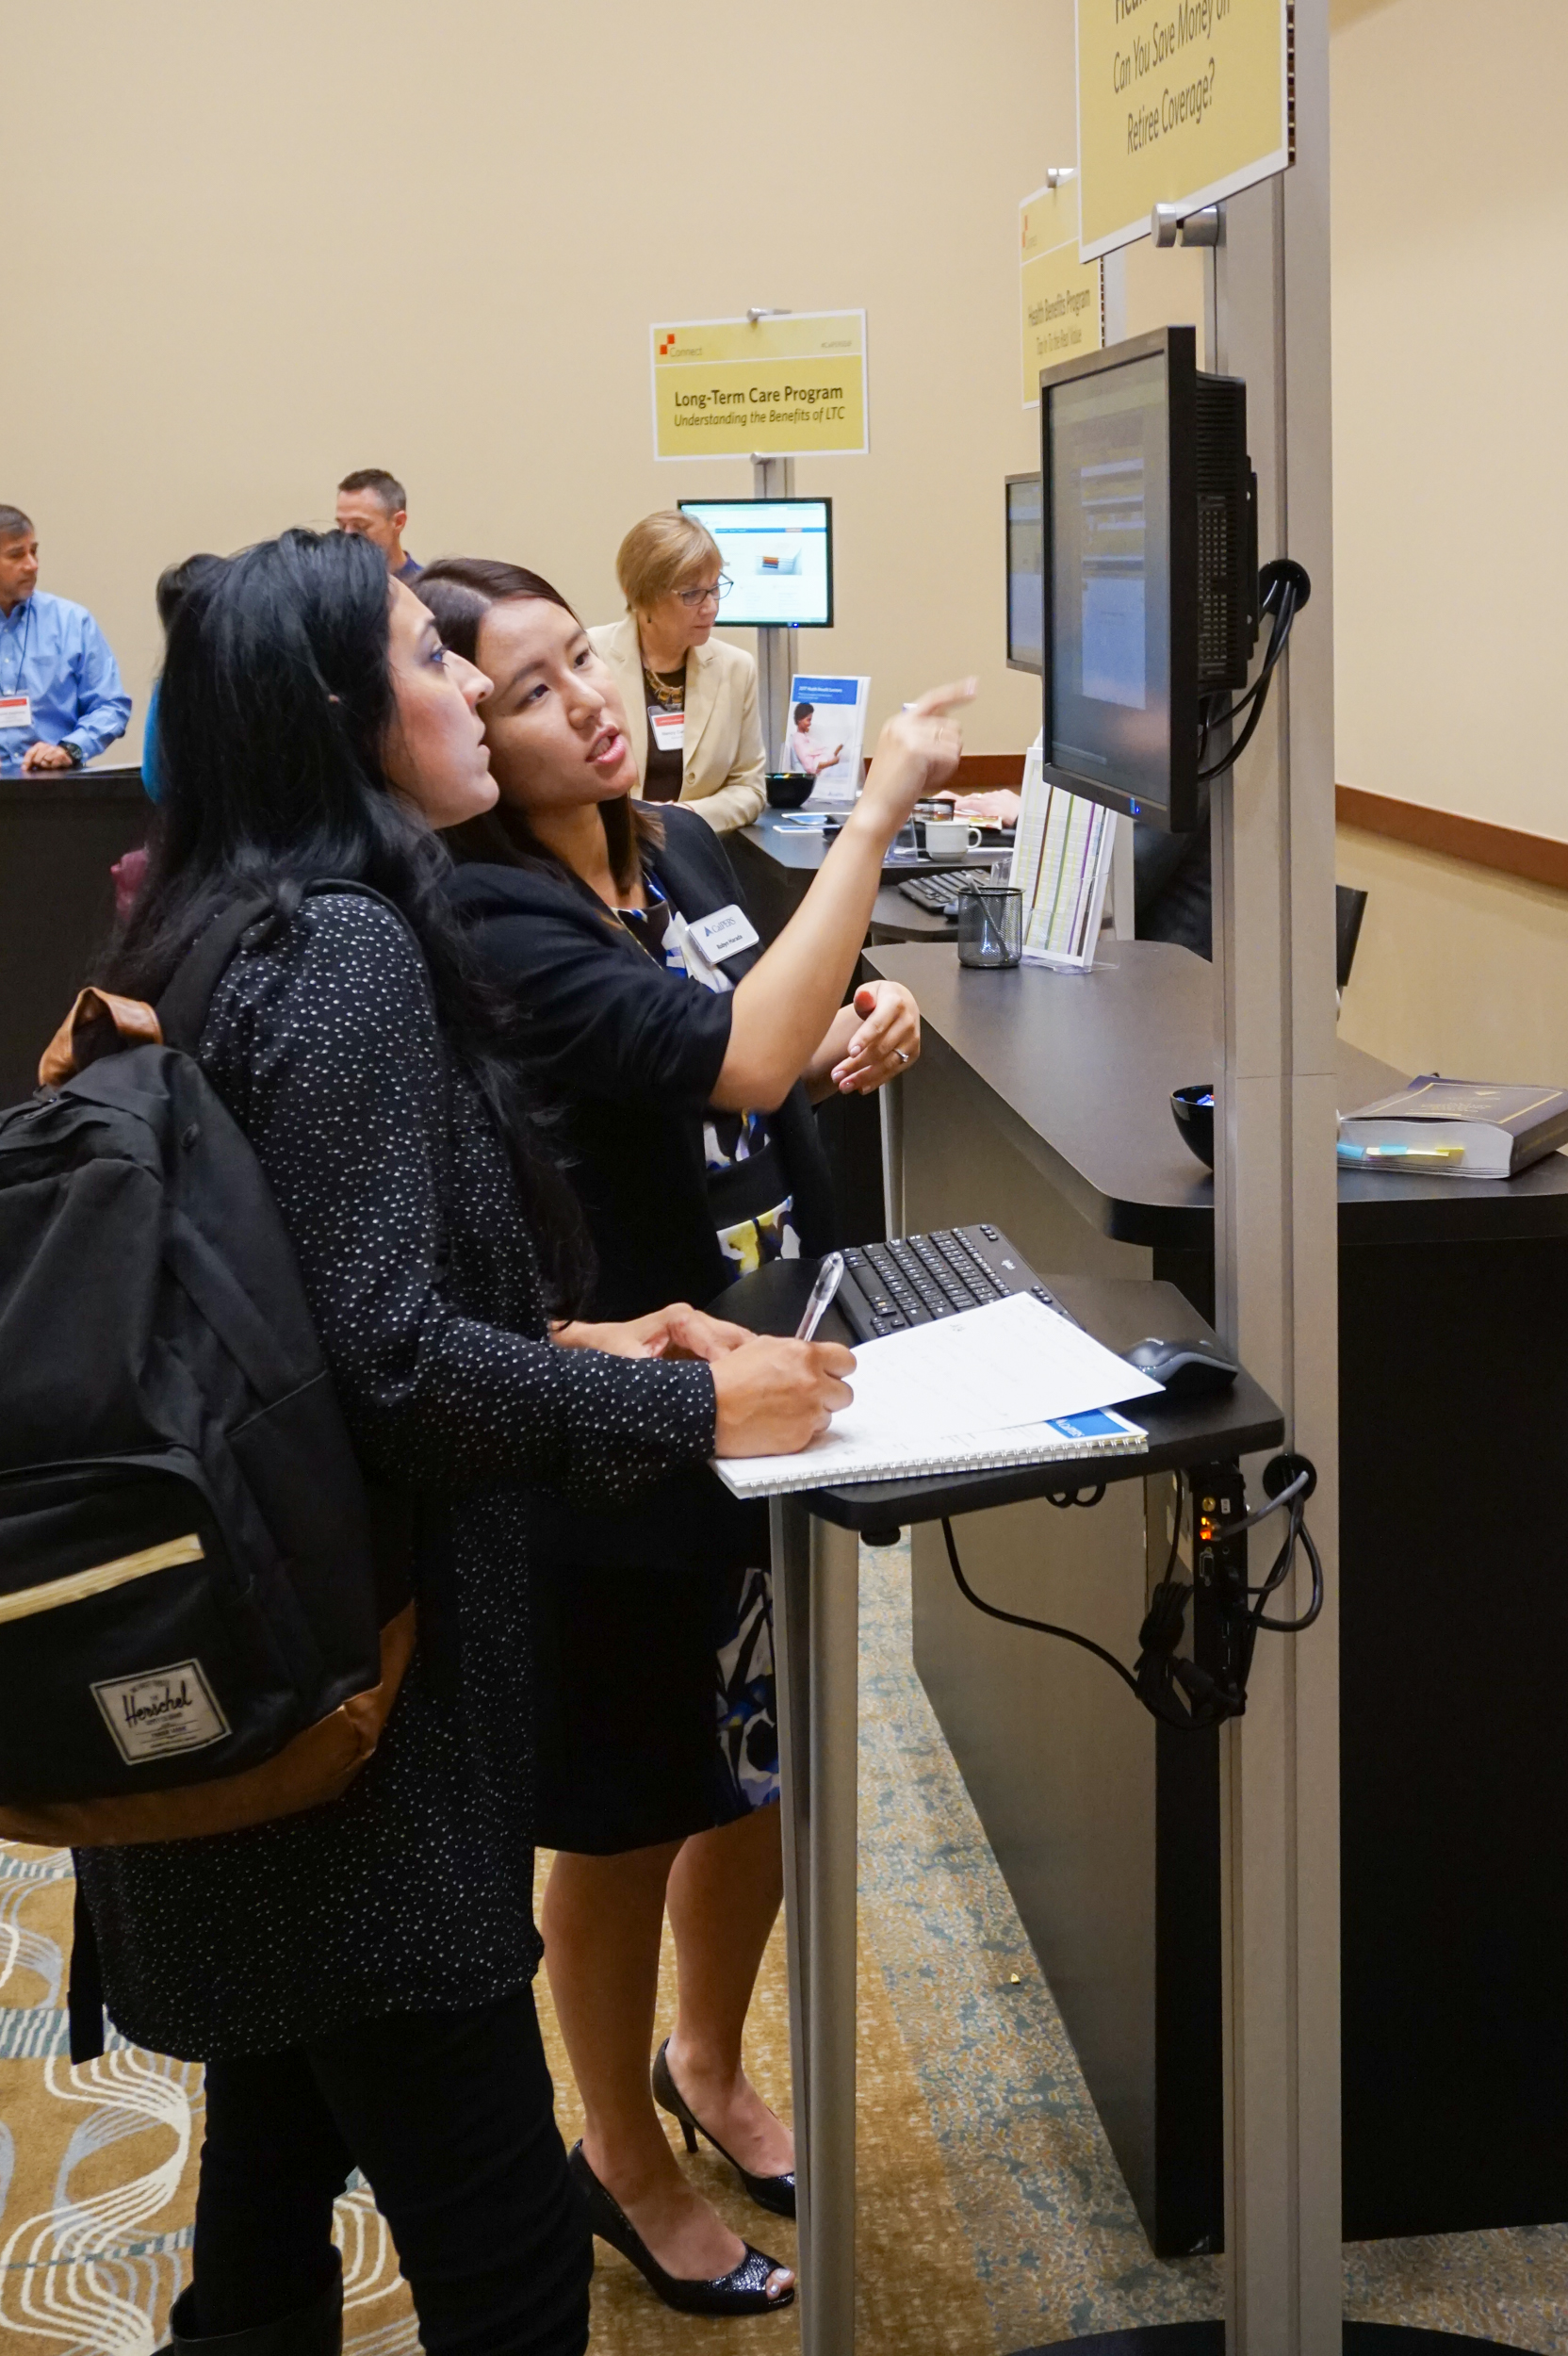 Thumbnail of: Staff Assisting Attendee at Computer with my|CalPERS